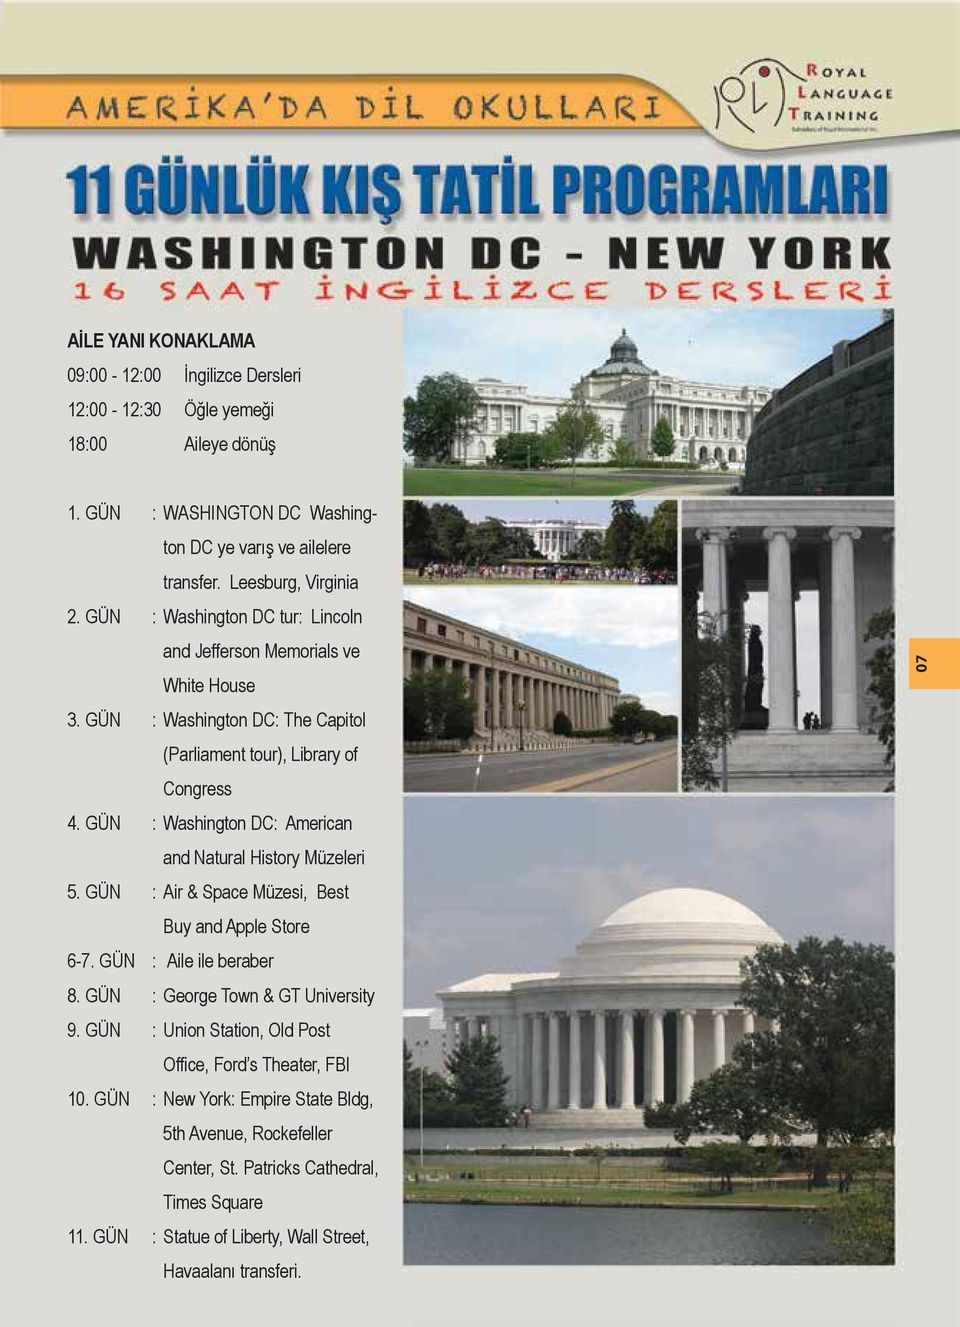 GÜN : Washington DC: American and Natural History Müzeleri 5. GÜN : Air & Space Müzesi, Best Buy and Apple Store 6-7. GÜN : Aile ile beraber 8. GÜN : George Town & GT University 9.